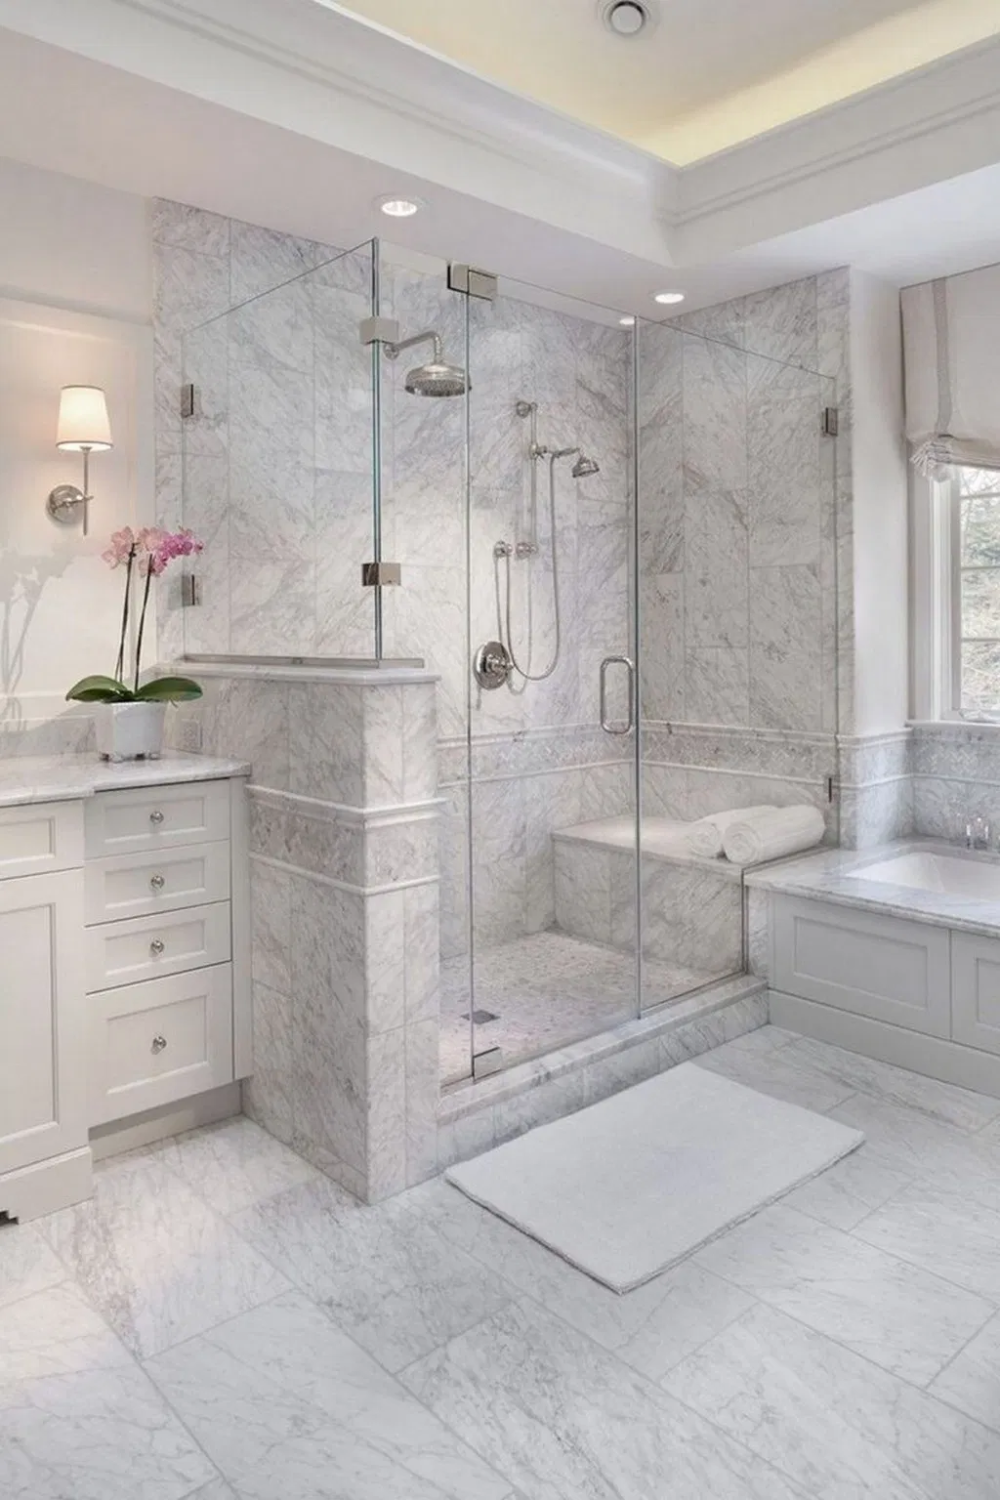 43 Best Farmhouse Master Bathroom Remodel Ideas 2020 26 Best Dream Home Bathroom Bathr Budget Bathroom Remodel Basement Bathroom Remodeling Small Bathroom